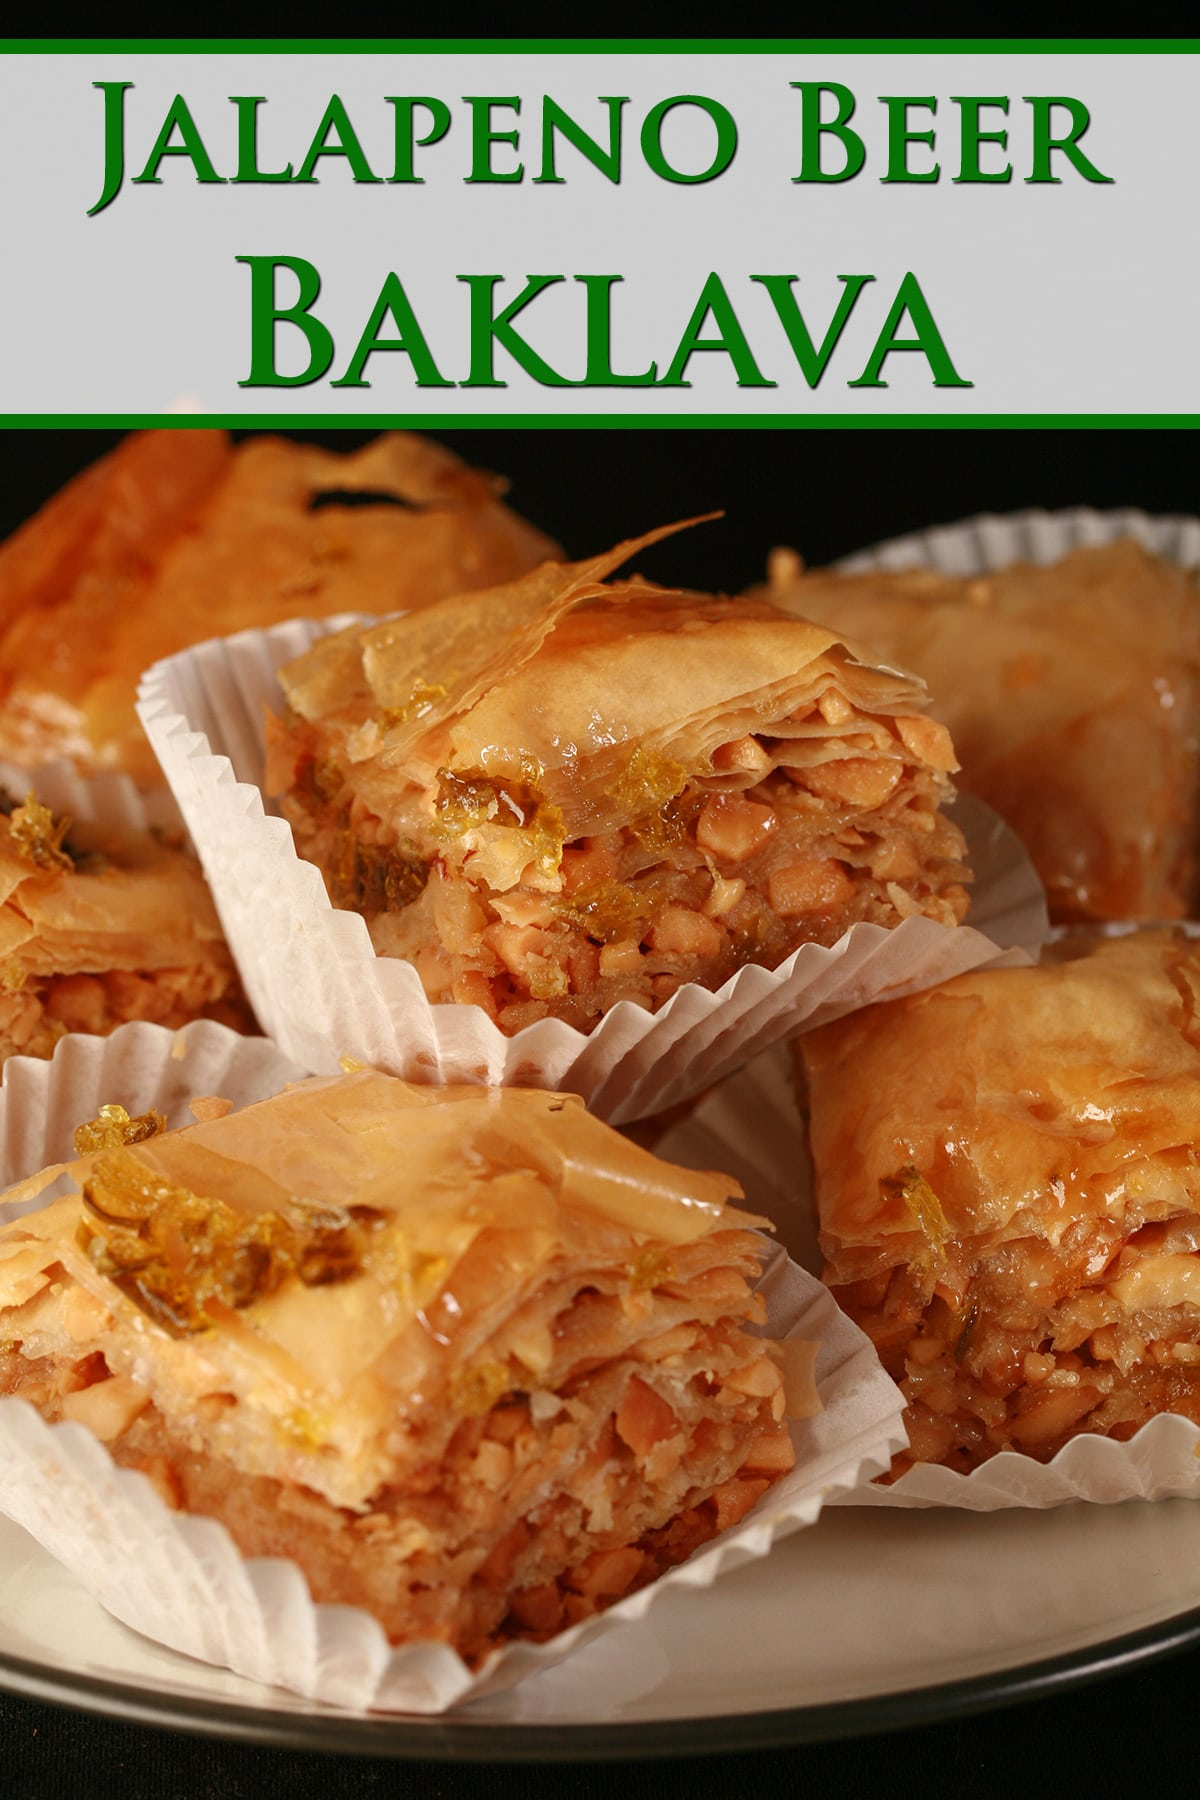 A small stack of squares of jalapeno beer peanut baklava, on a small plate.